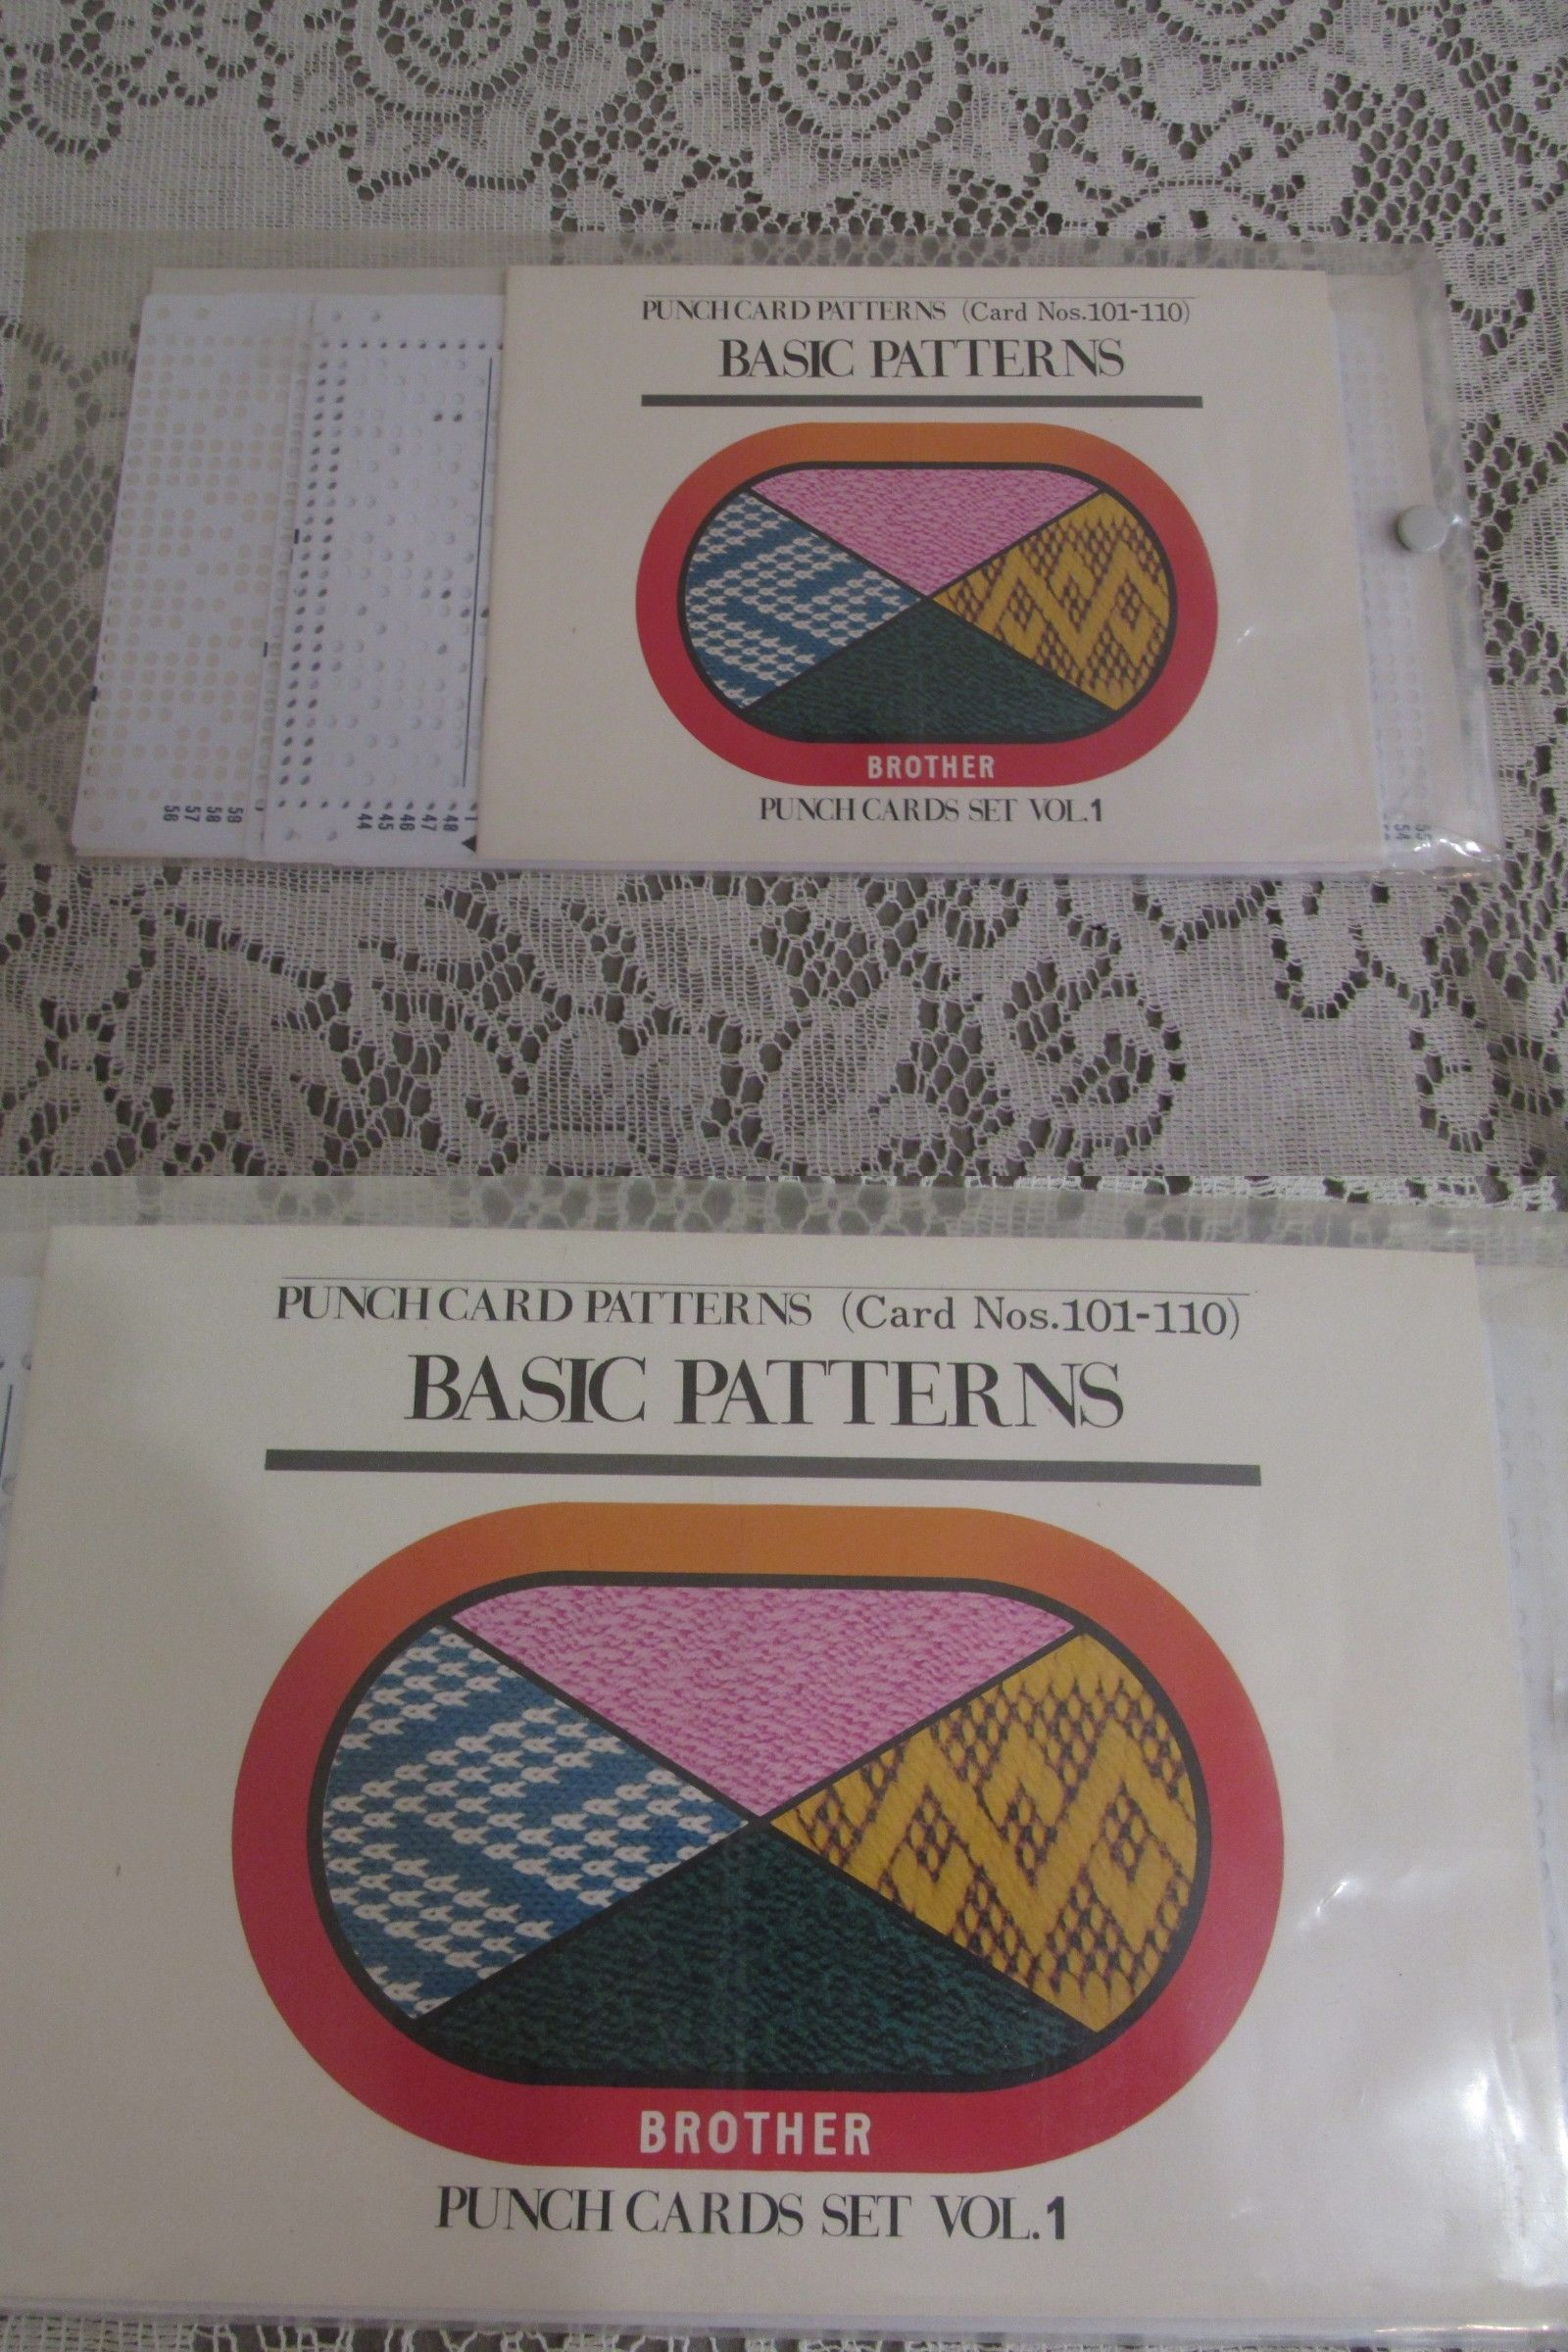 Machine Knitting Patterns 146375: Brother Basic Patterns ...